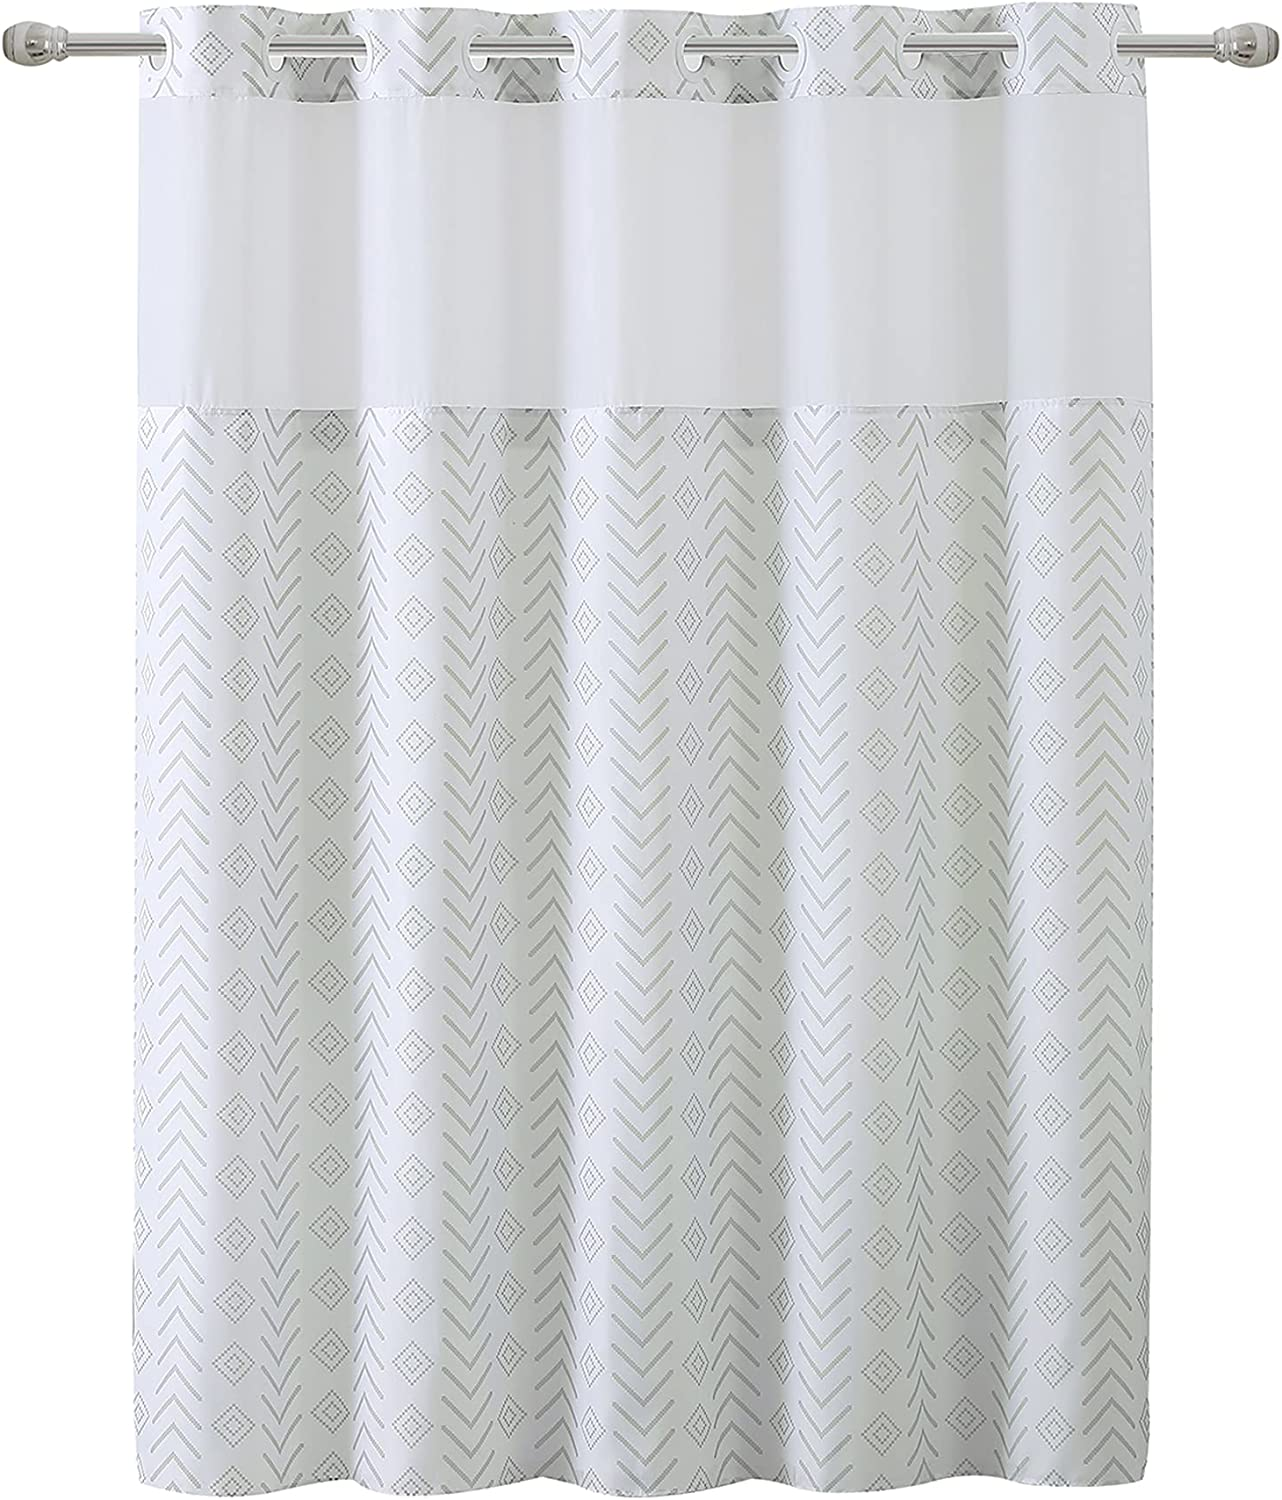 Hookless Tribal Shower Curtain with Peva Liner Atlanta Mall 71 74 X Taupe Inexpensive